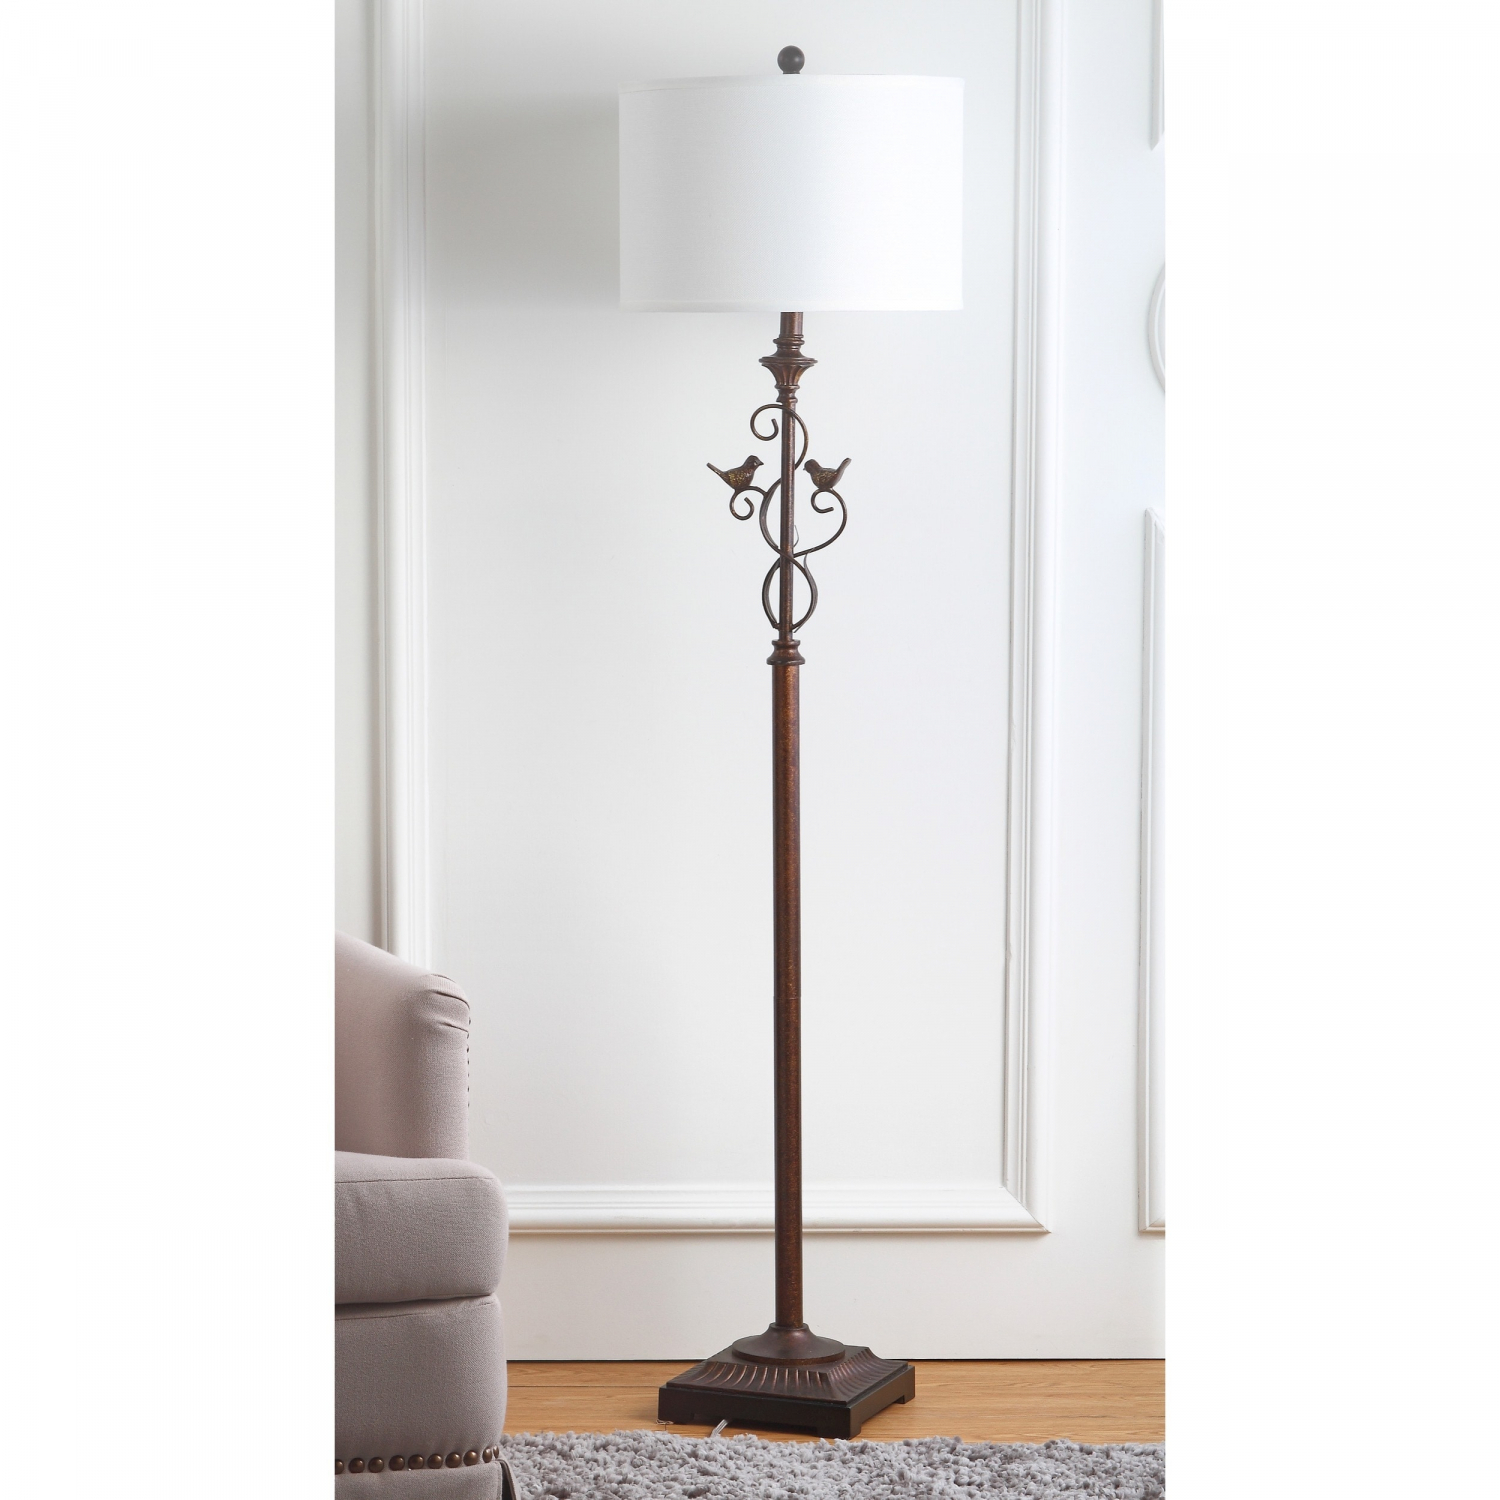 Details About Safavieh Lighting 61 Inch Birdsong Oil Rubbed Bronze Floor Lamp with regard to sizing 1500 X 1500